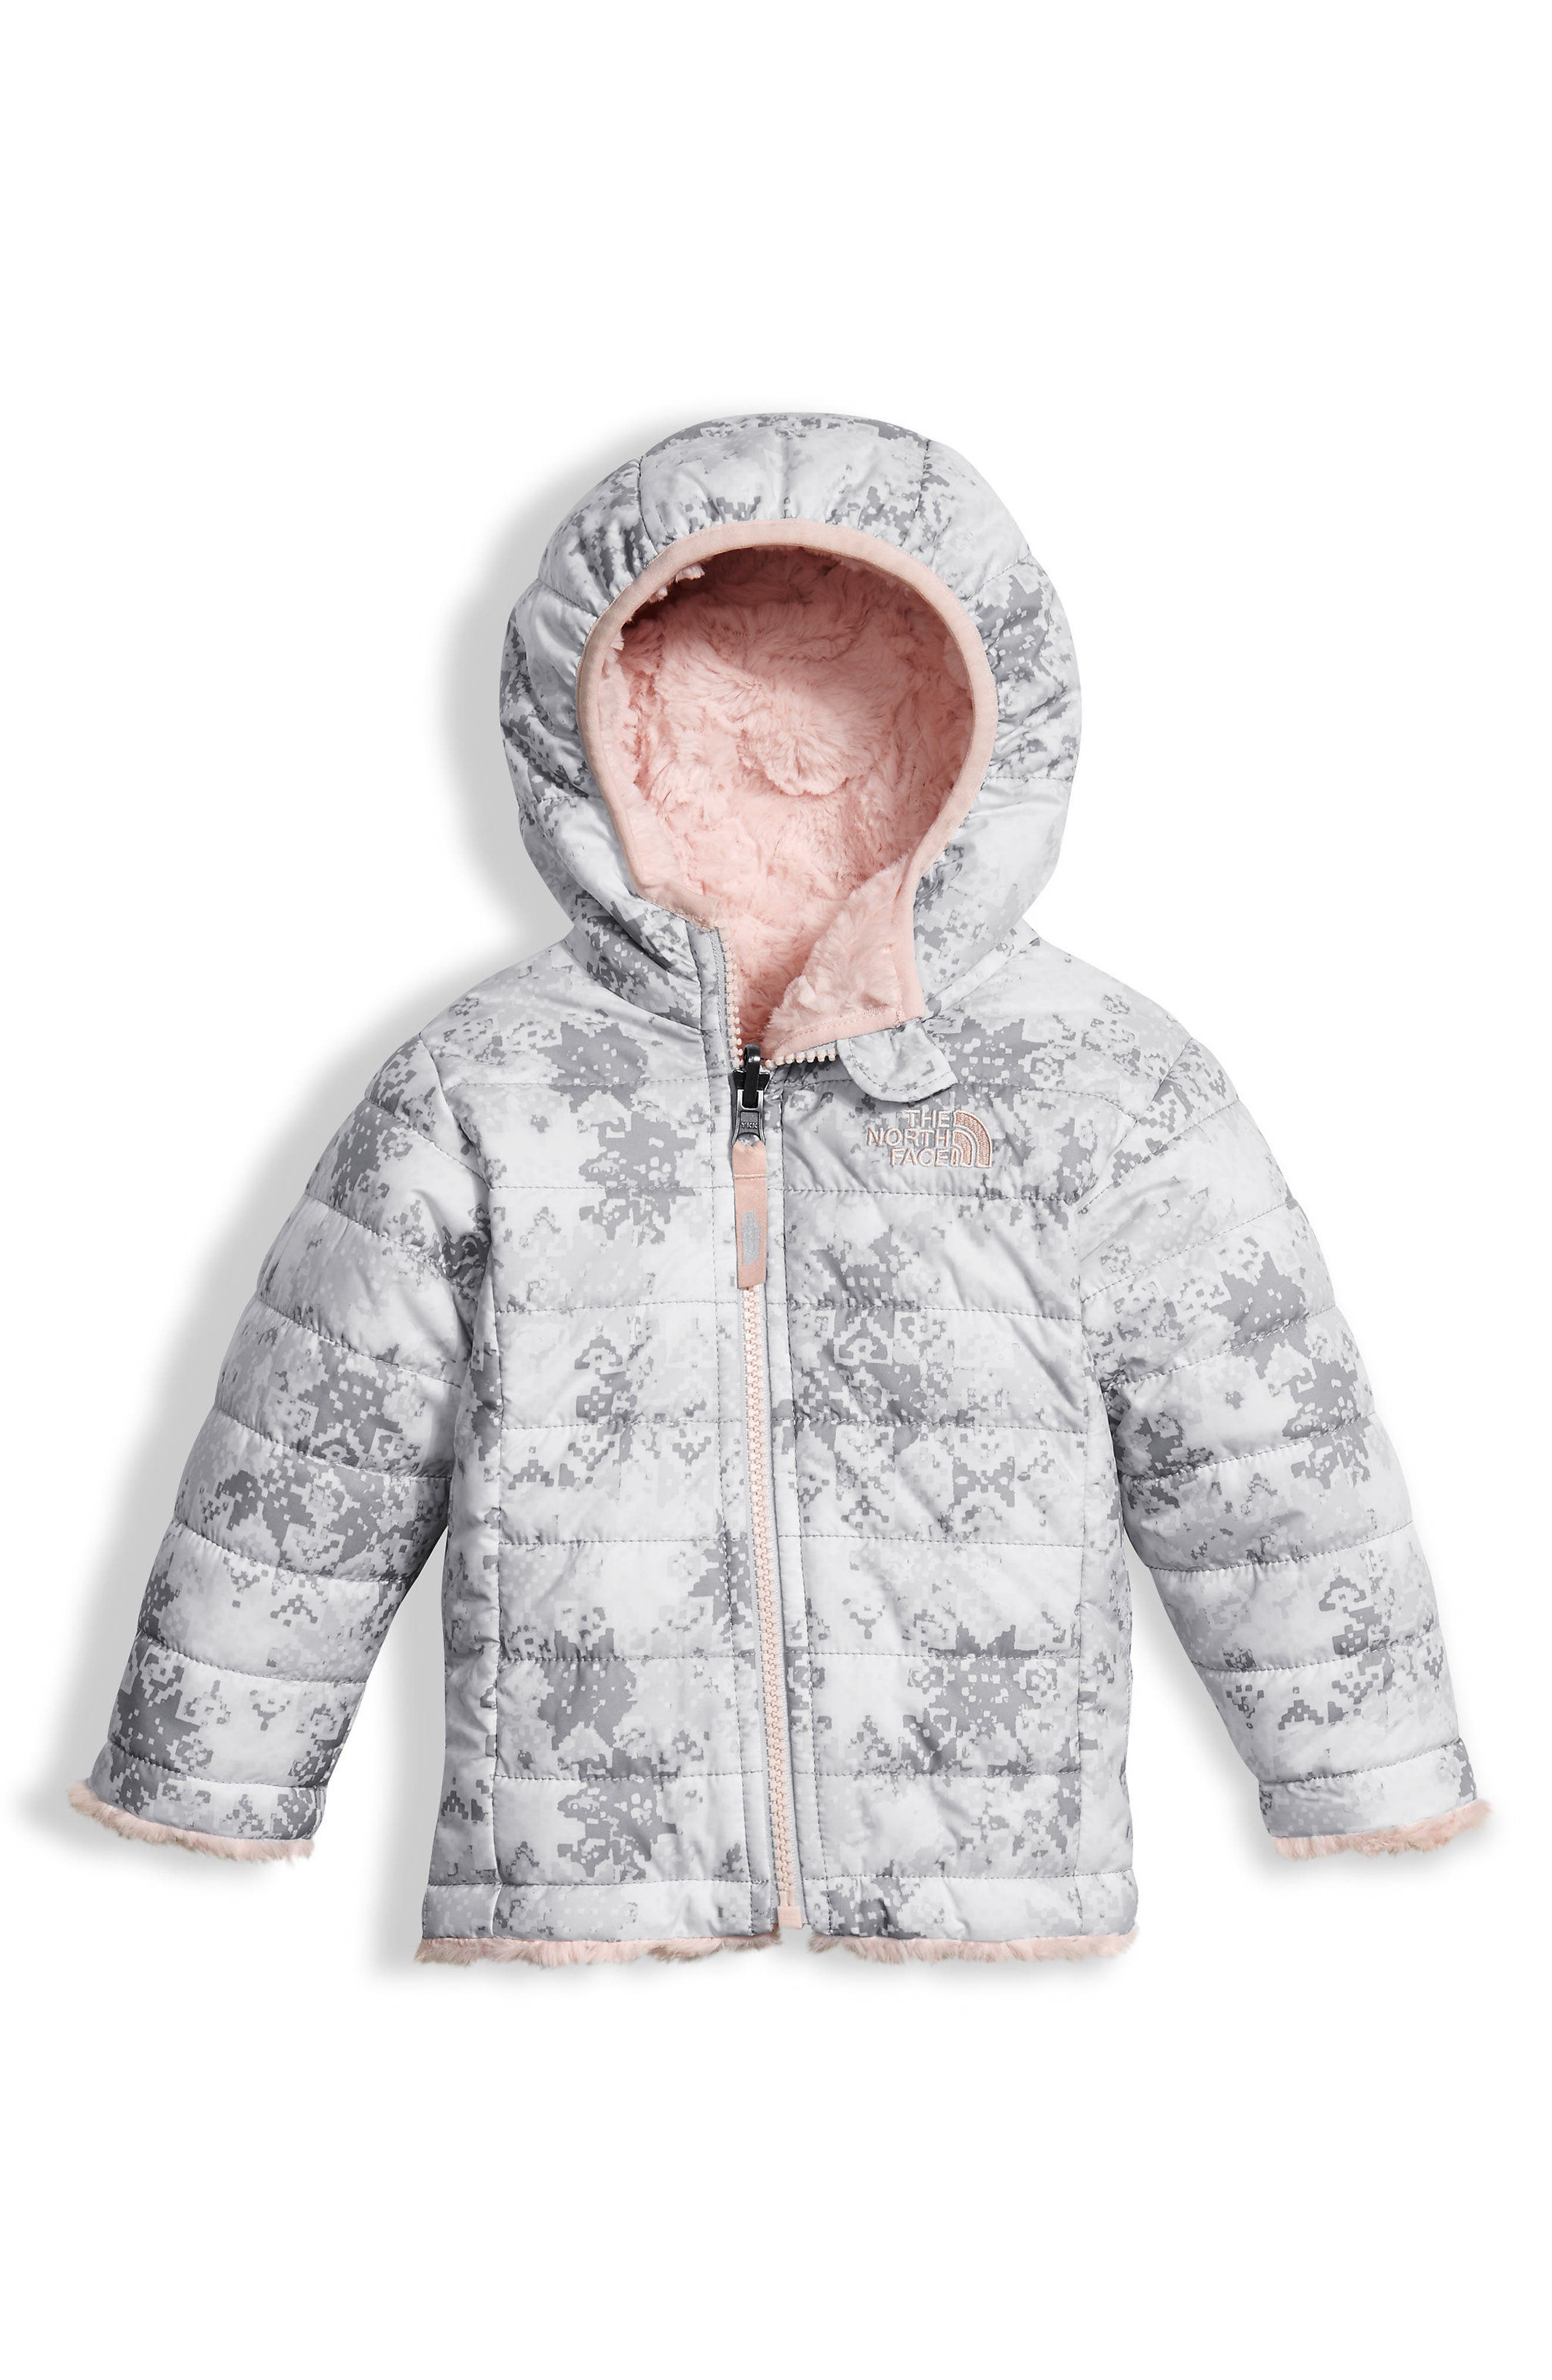 Mossbud Swirl Reversible Water Repellent Jacket,                         Main,                         color, Tnf White Snow